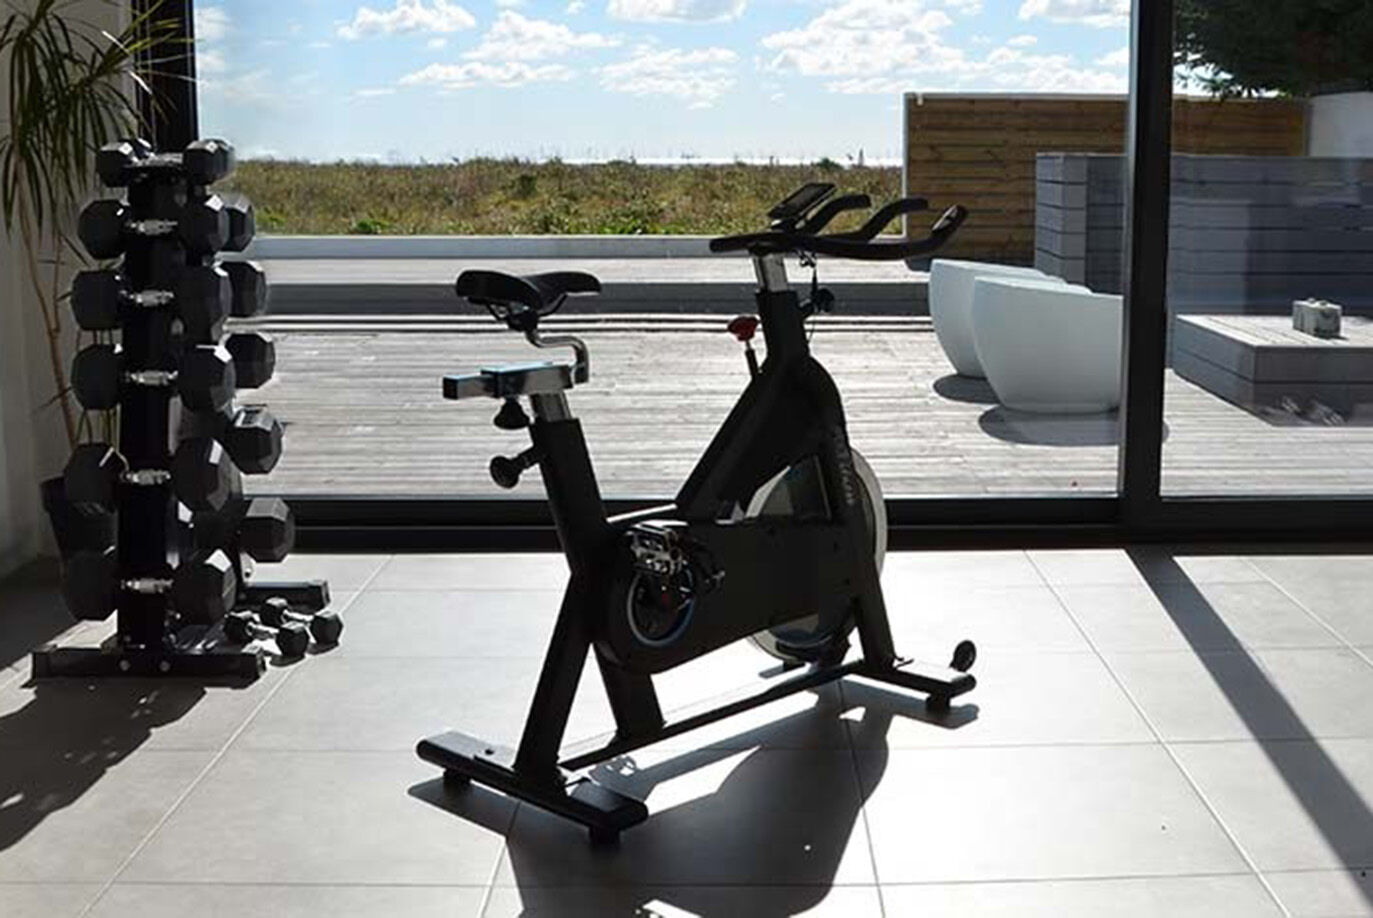 Stylish Dumbbell Rack For Your Home or Commercial Gym